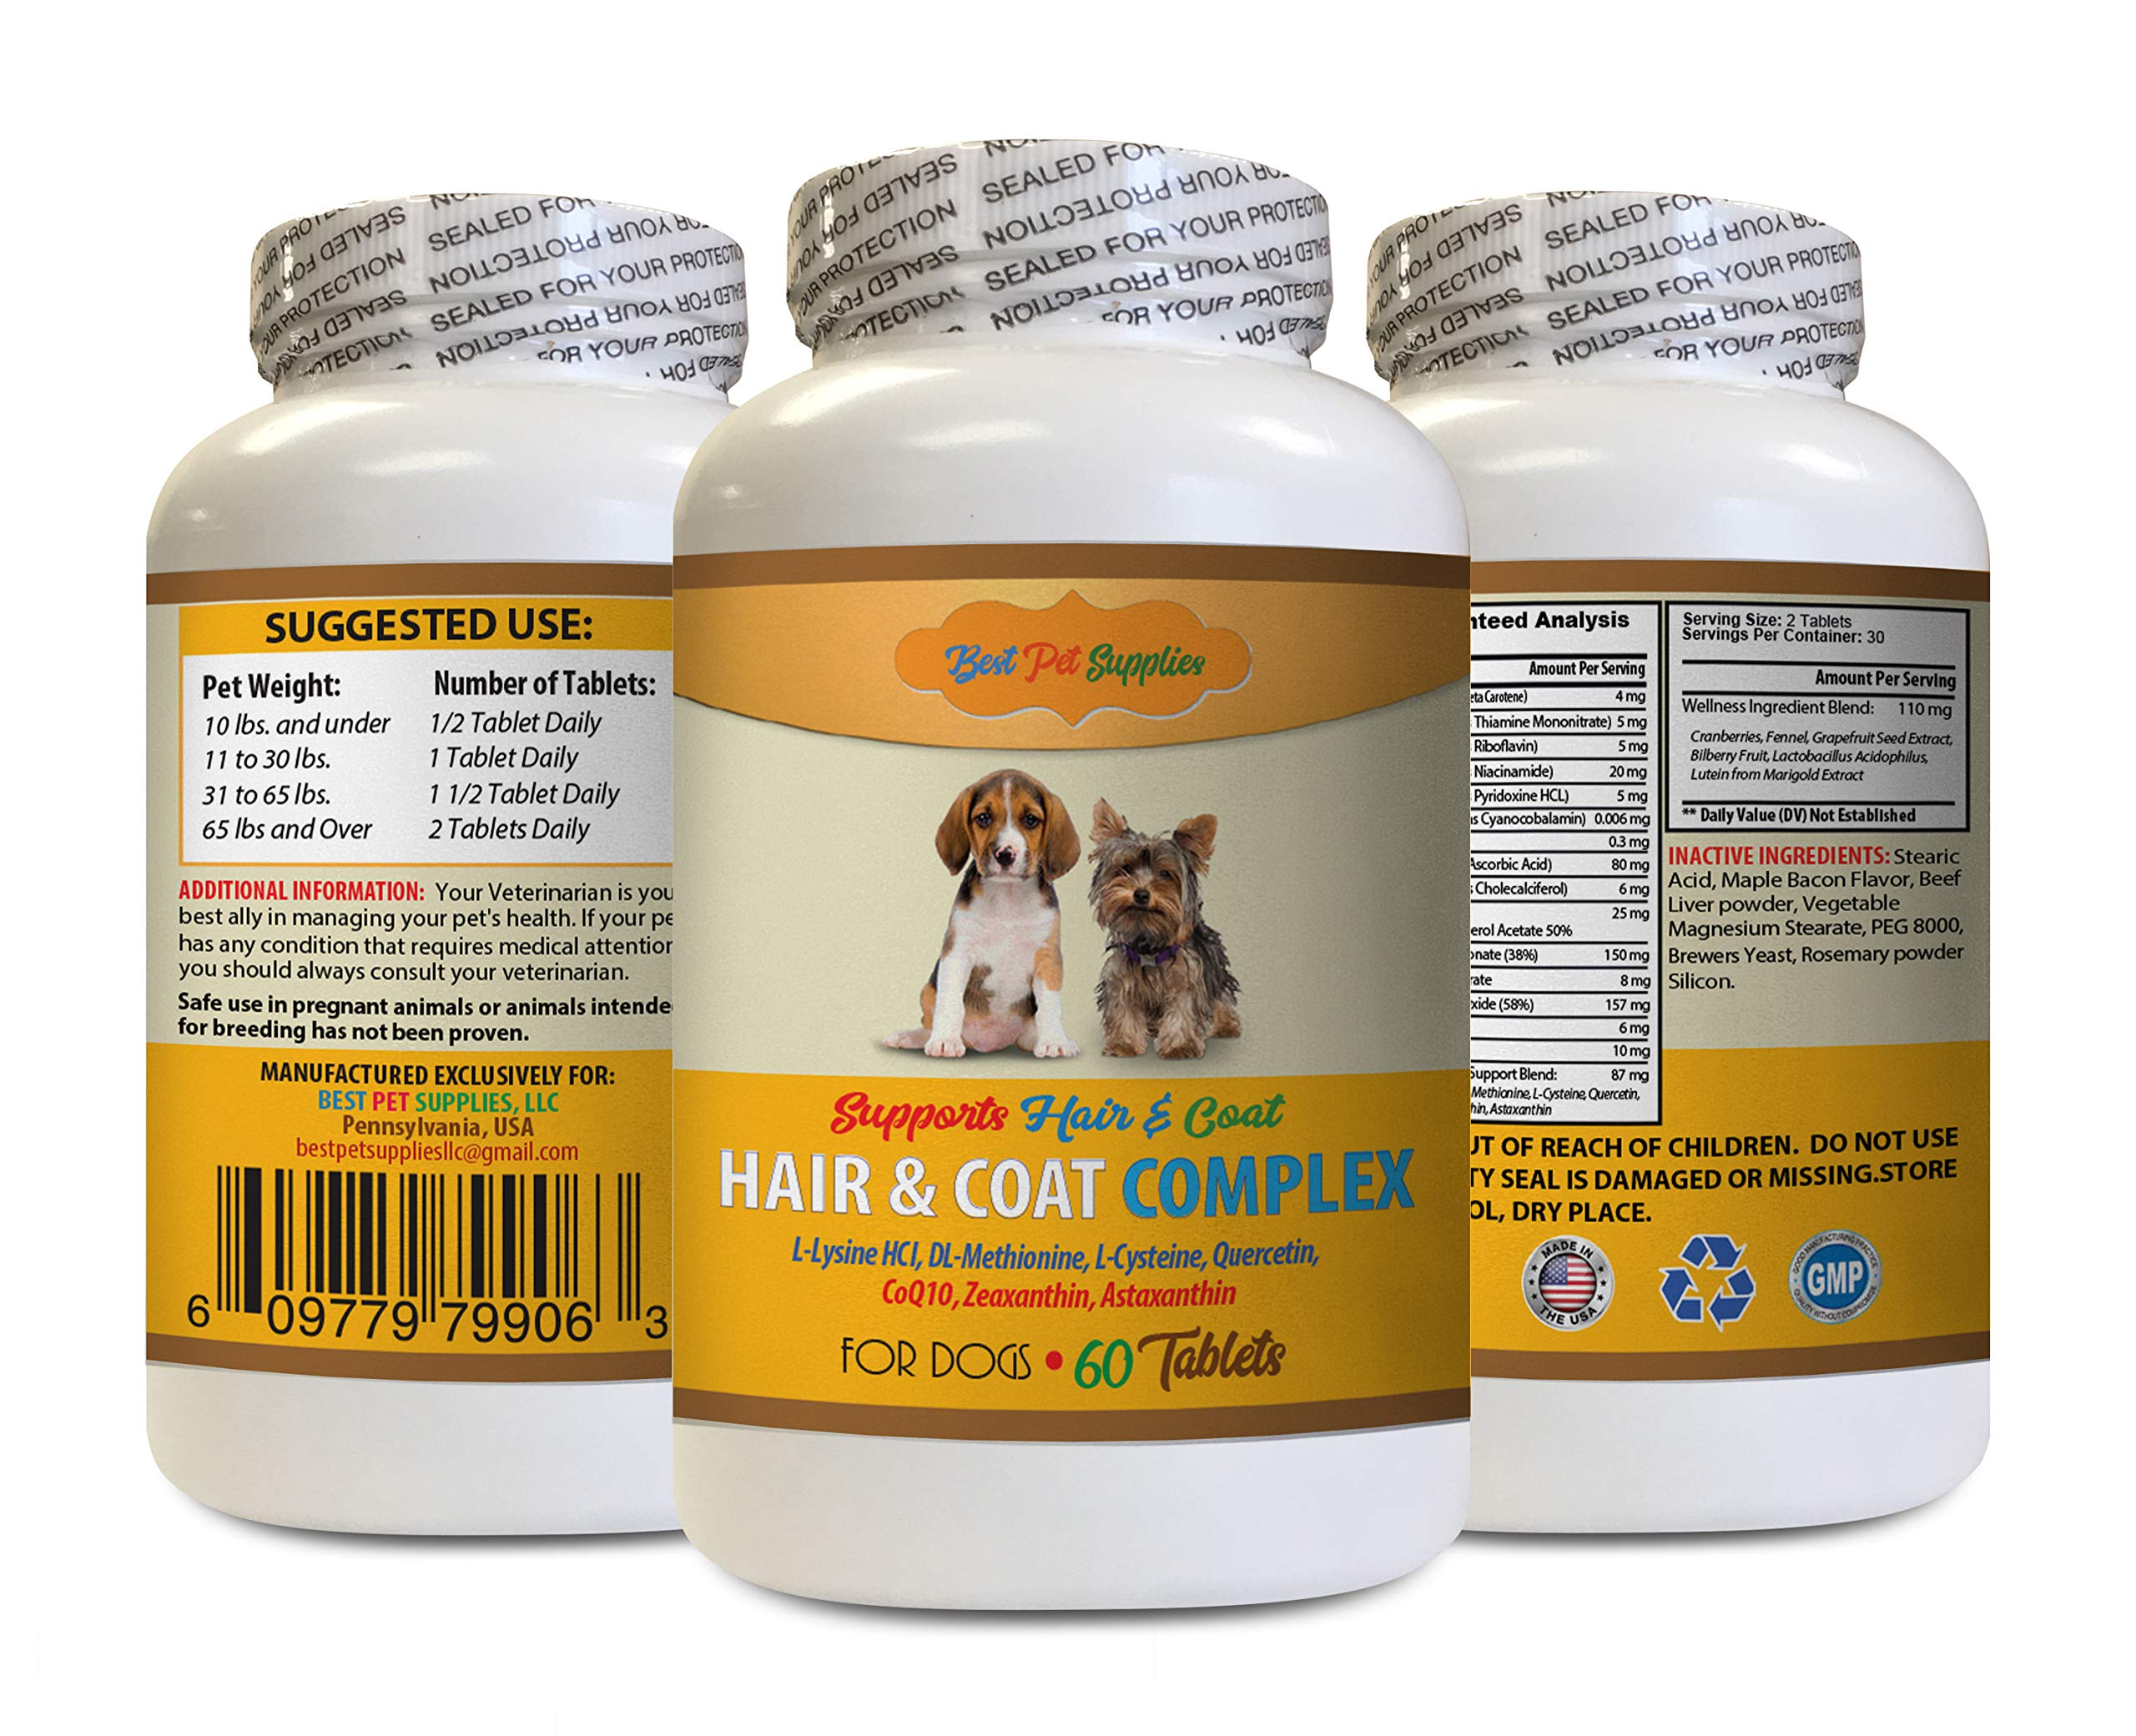 BEST PET SUPPLIES LLC Immune Booster for Dogs - Hair and Coat Complex for Dogs - Full Skin and Hair Health - Immune Boost - Dog Minerals - 60 Tablets (1 Bottle) by BEST PET SUPPLIES LLC